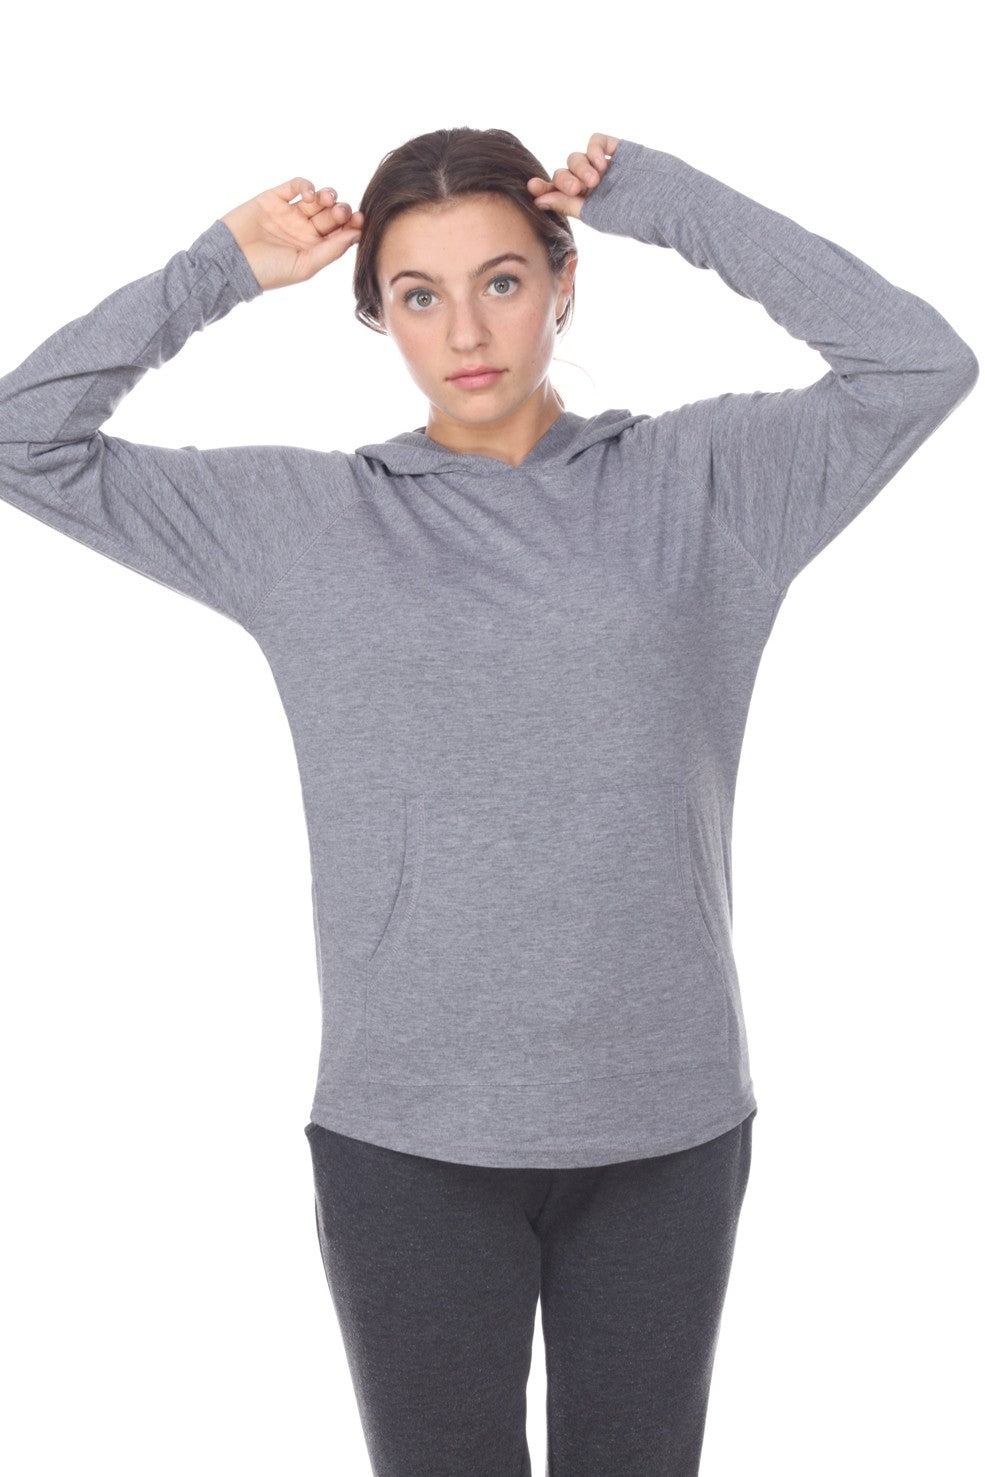 UNISEX Lightweight Pullover Hoodie L/S with Curved Hem